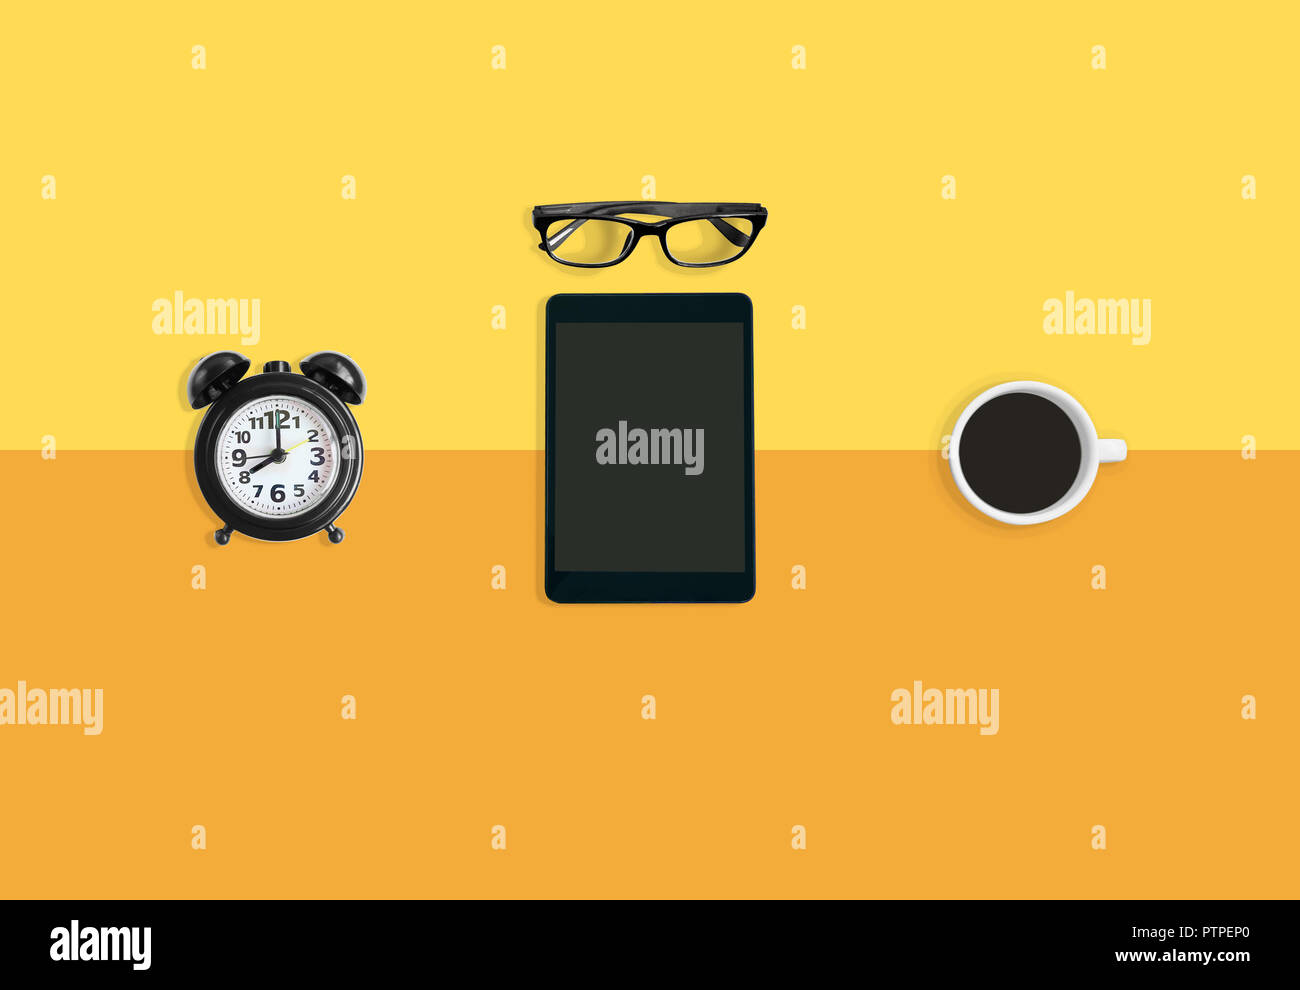 Simple Modern Alarm Clock Coffee Break Concept A Modern Working Space With Simple Yellow